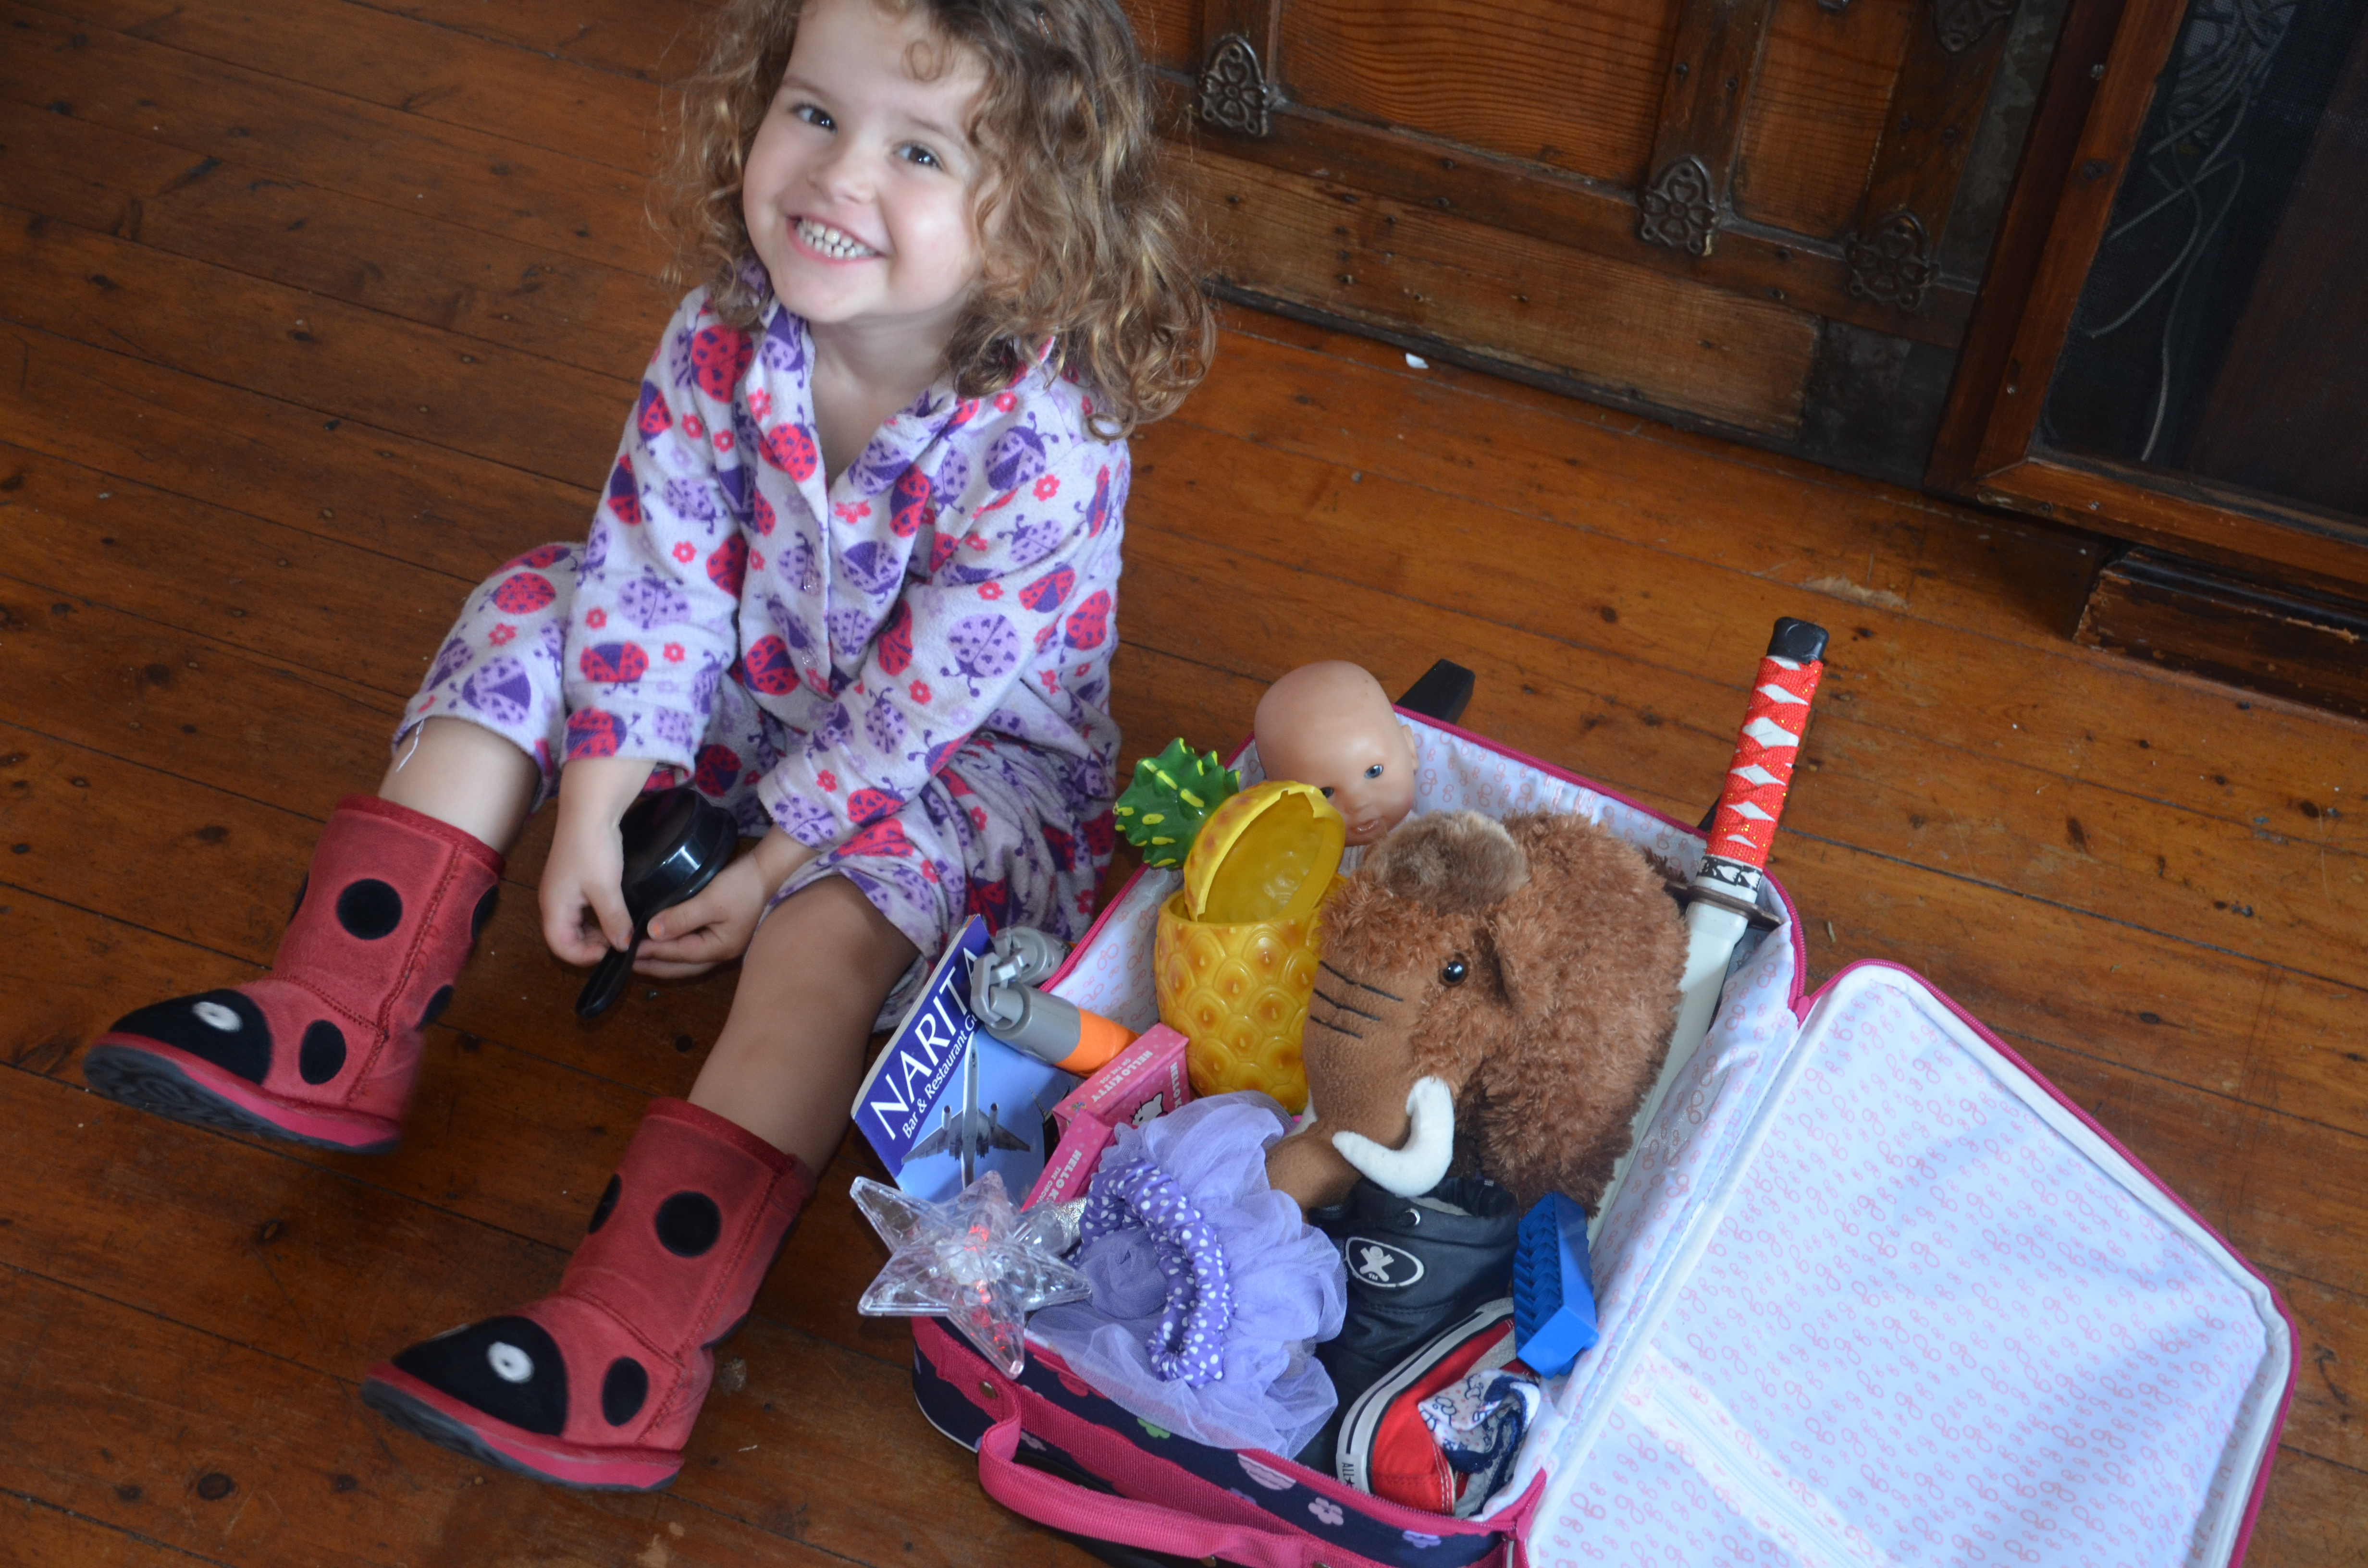 little girl packing her own luggage